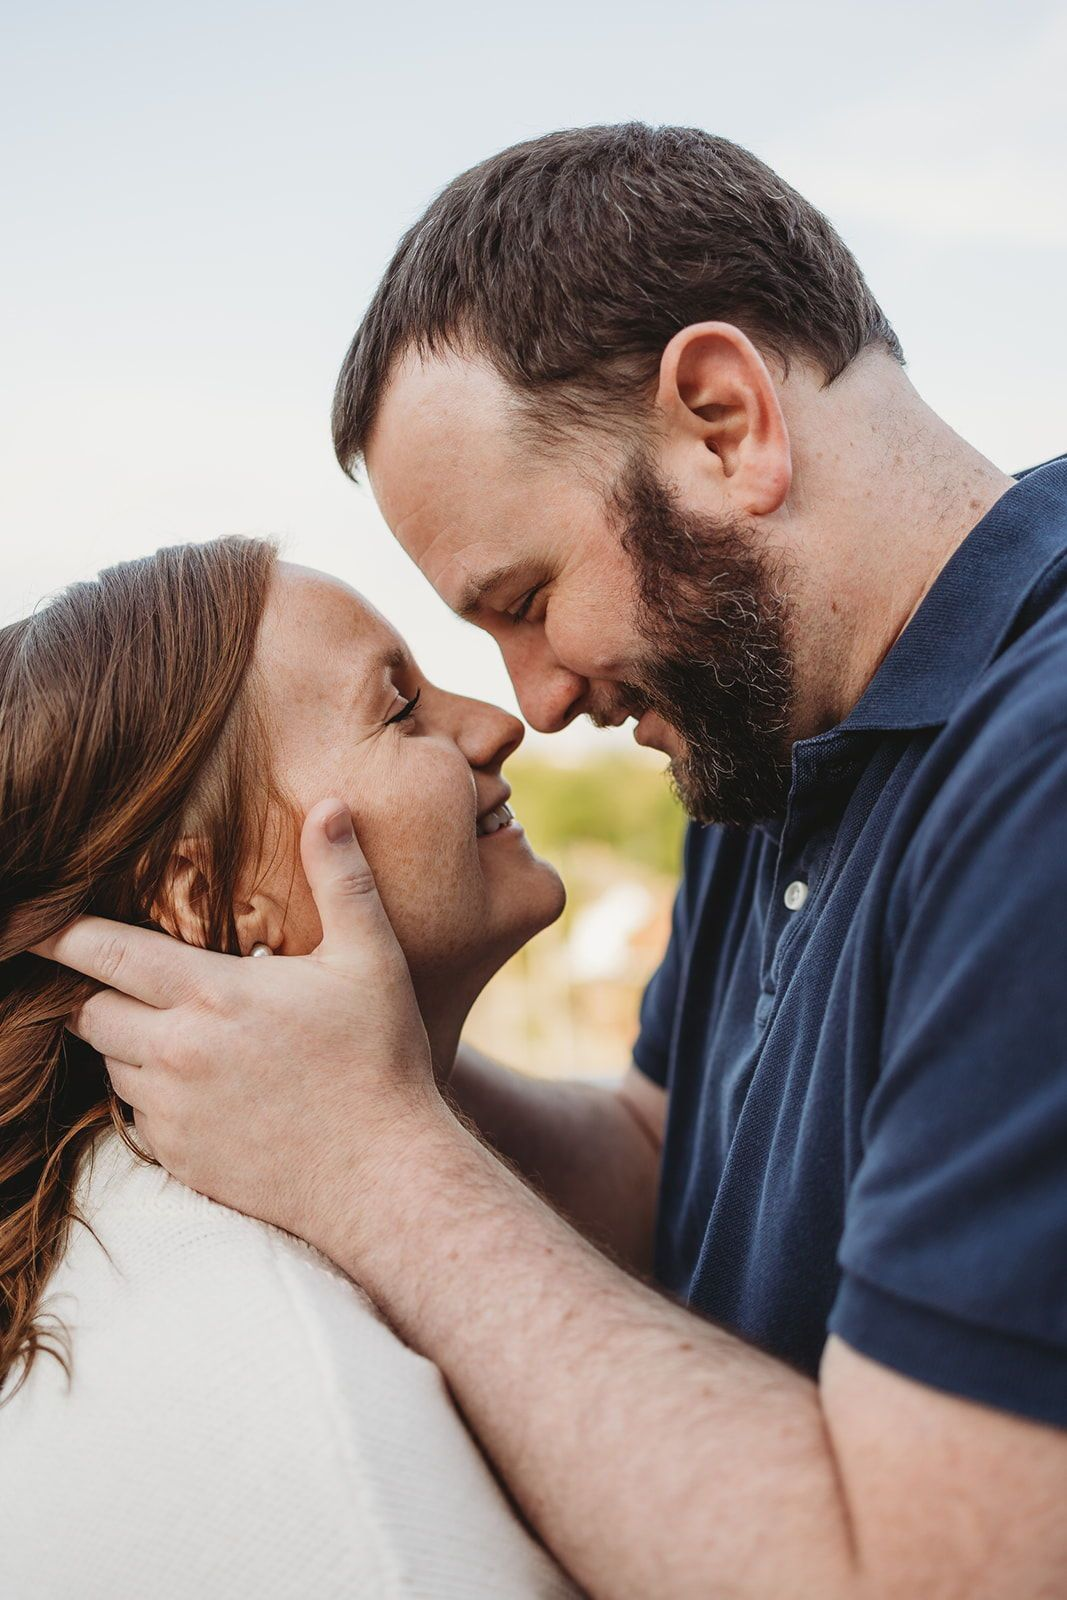 Cute engagement session at western michigan university in park. Perfect inspiration for couples photo shoot poses ideas. Fiance holding girls face about to kiss. Engagement photo shoot inspiration in fall! Traveling Wedding and Couples Photographer. Lindsay Elaine Photography.